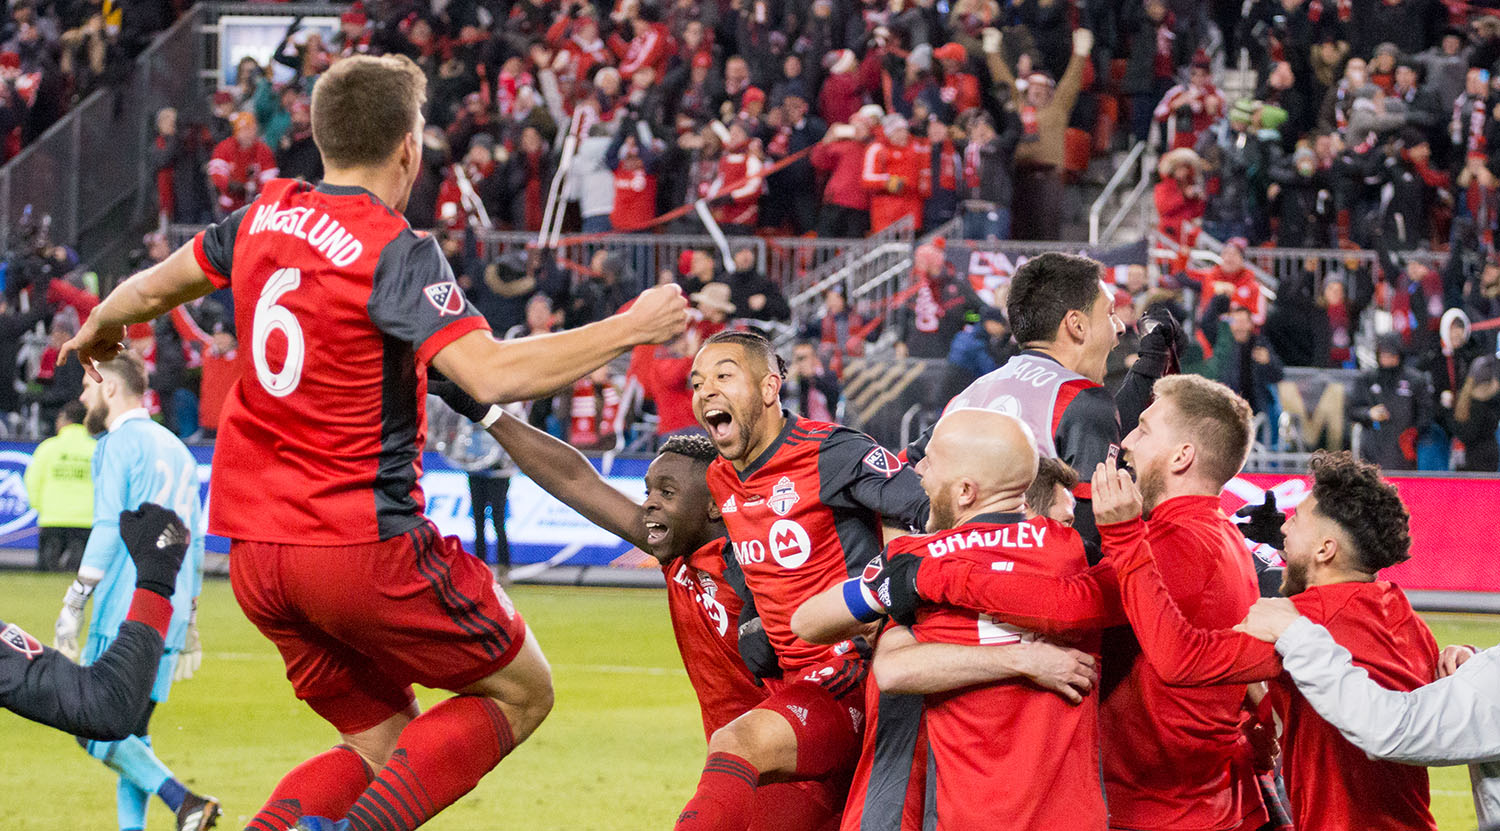 Toronto FC celebrating moments after the second goal is scored for Toronto FC solidying the 2017 MLS Cup victory for the team.Image by Dennis Marciniak of denMAR Media.